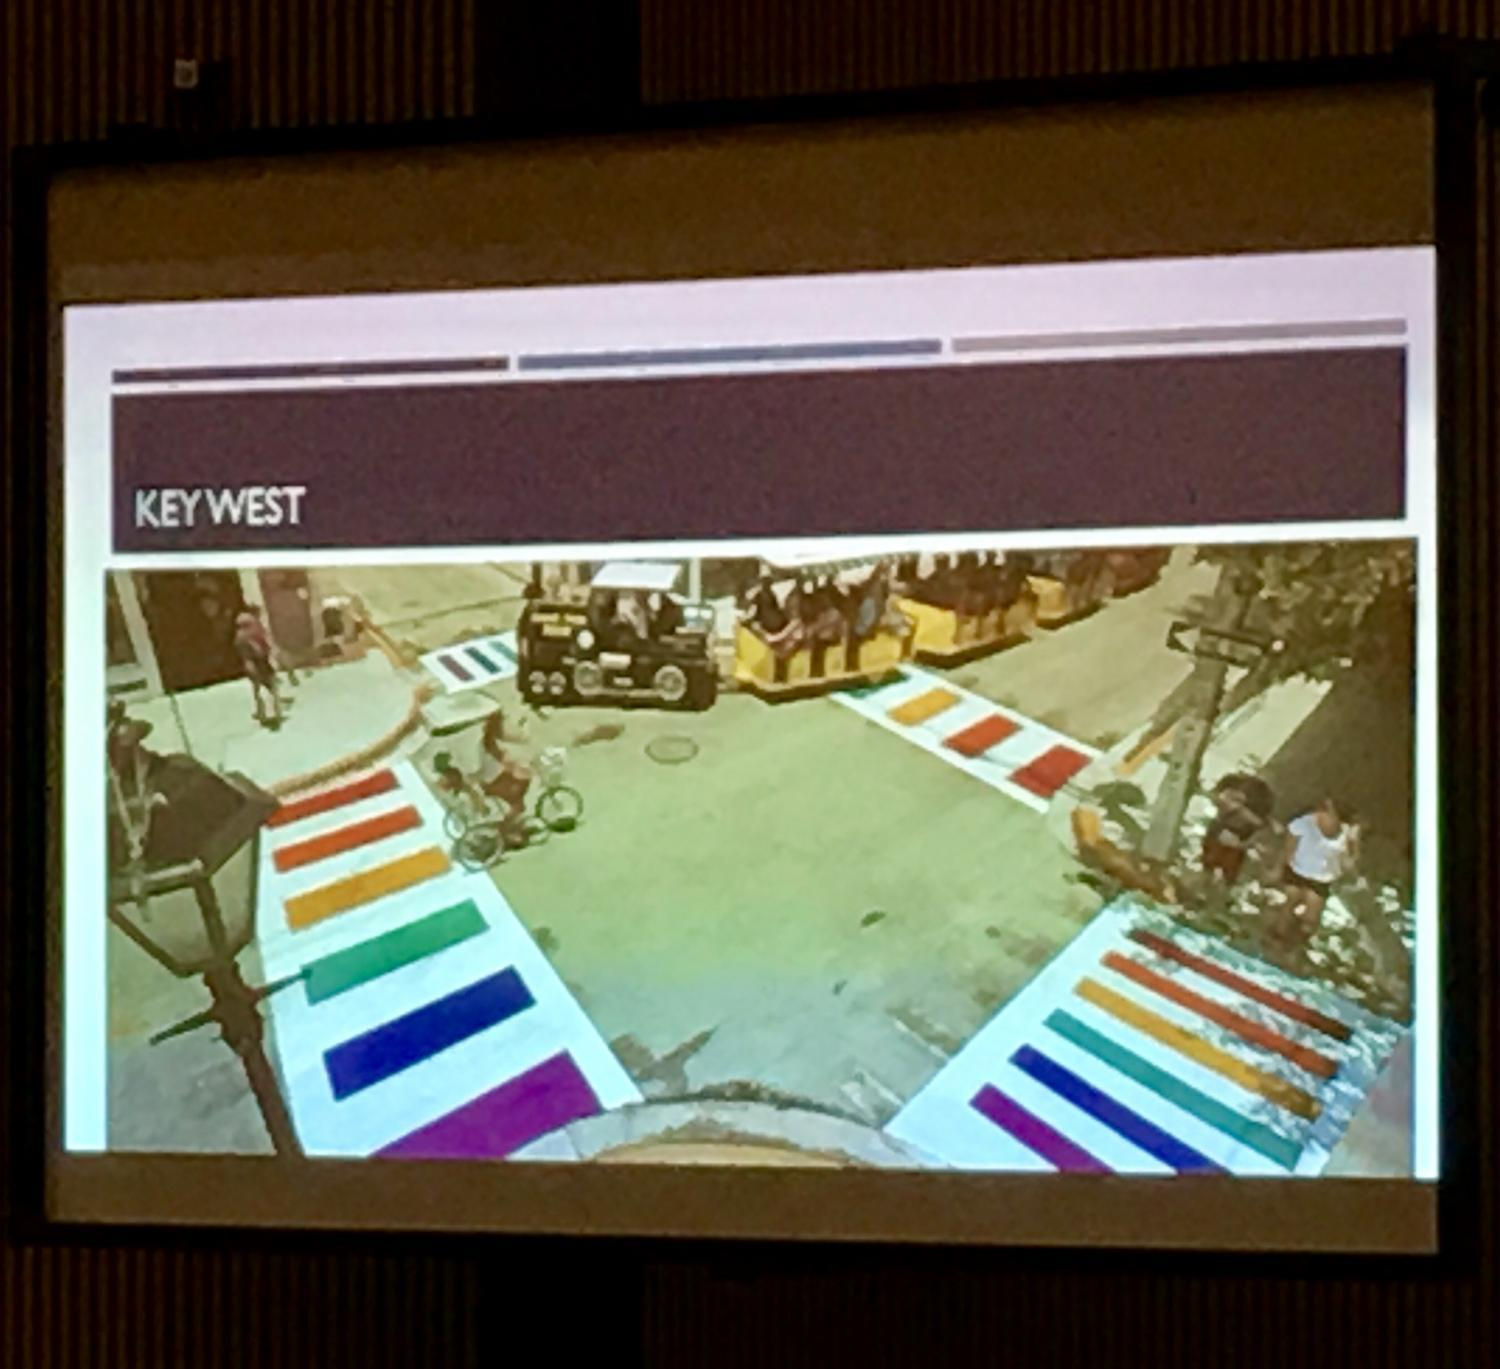 Rainbow crosswalks examples